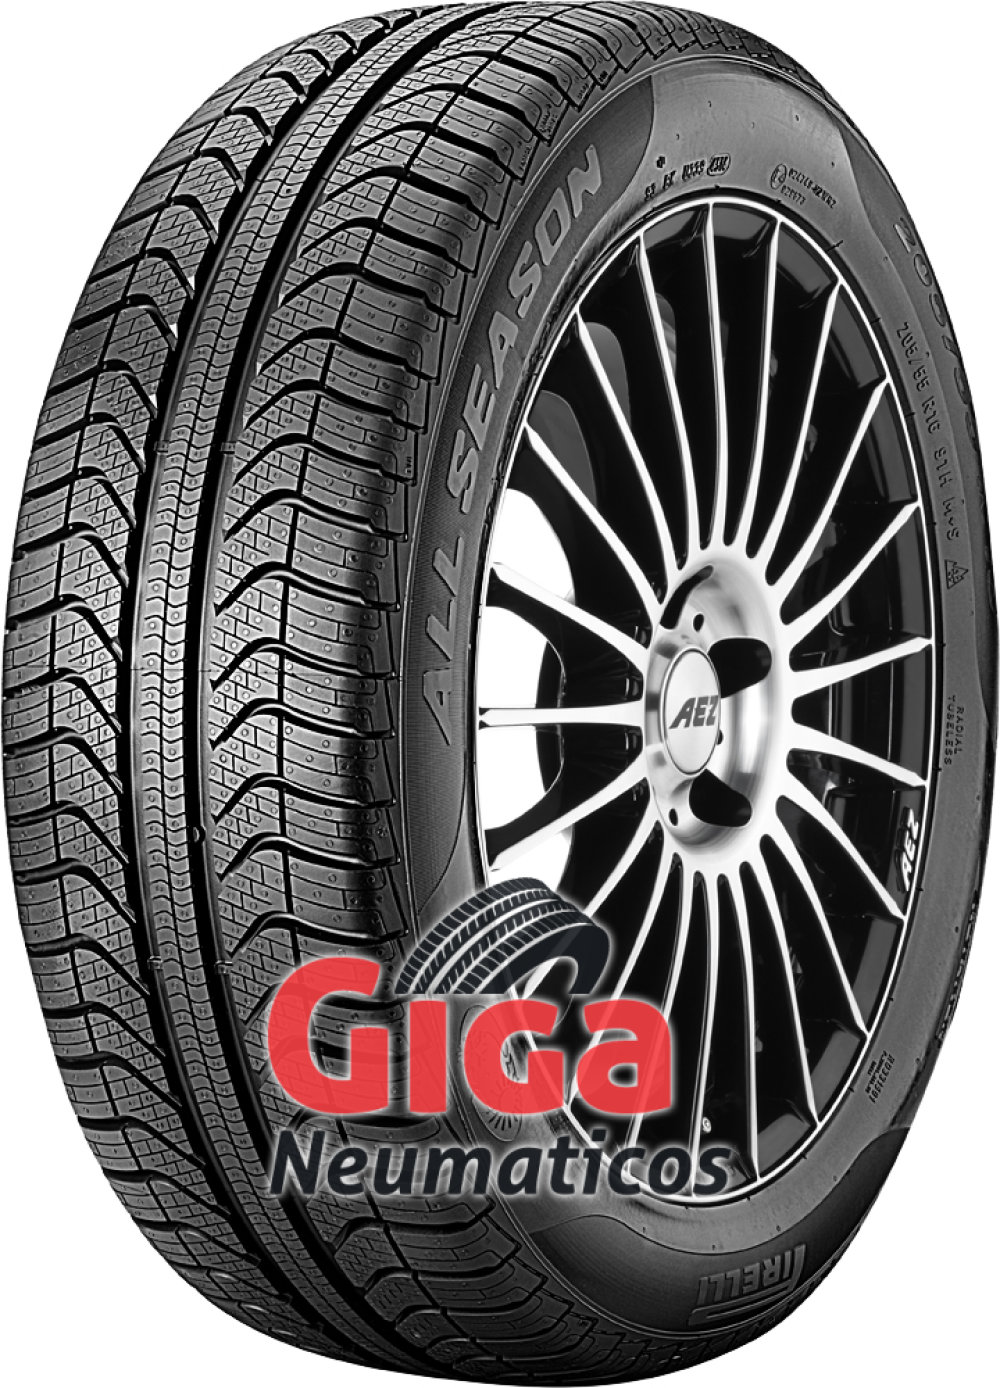 Pirelli Cinturato All Season ( 195/65 R15 91T )